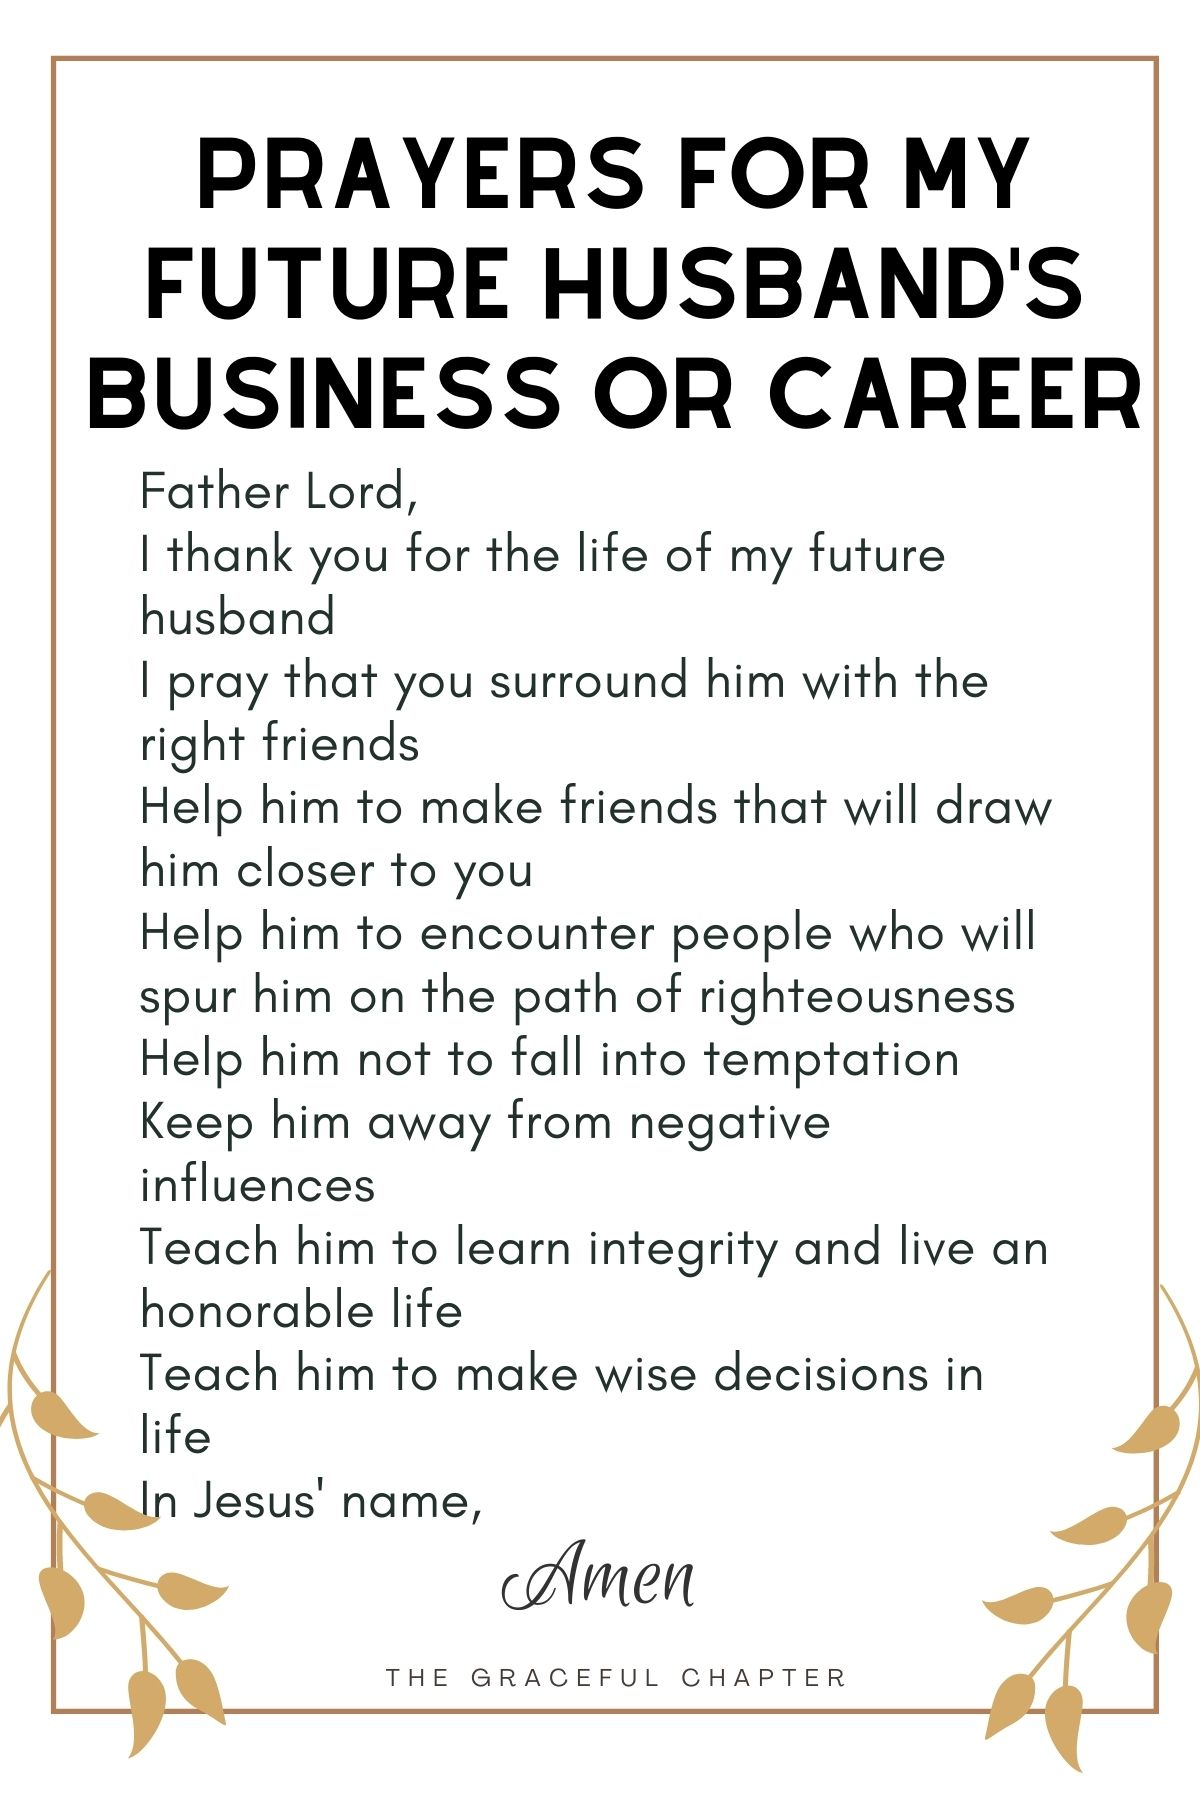 Prayer for my future husband's business or career